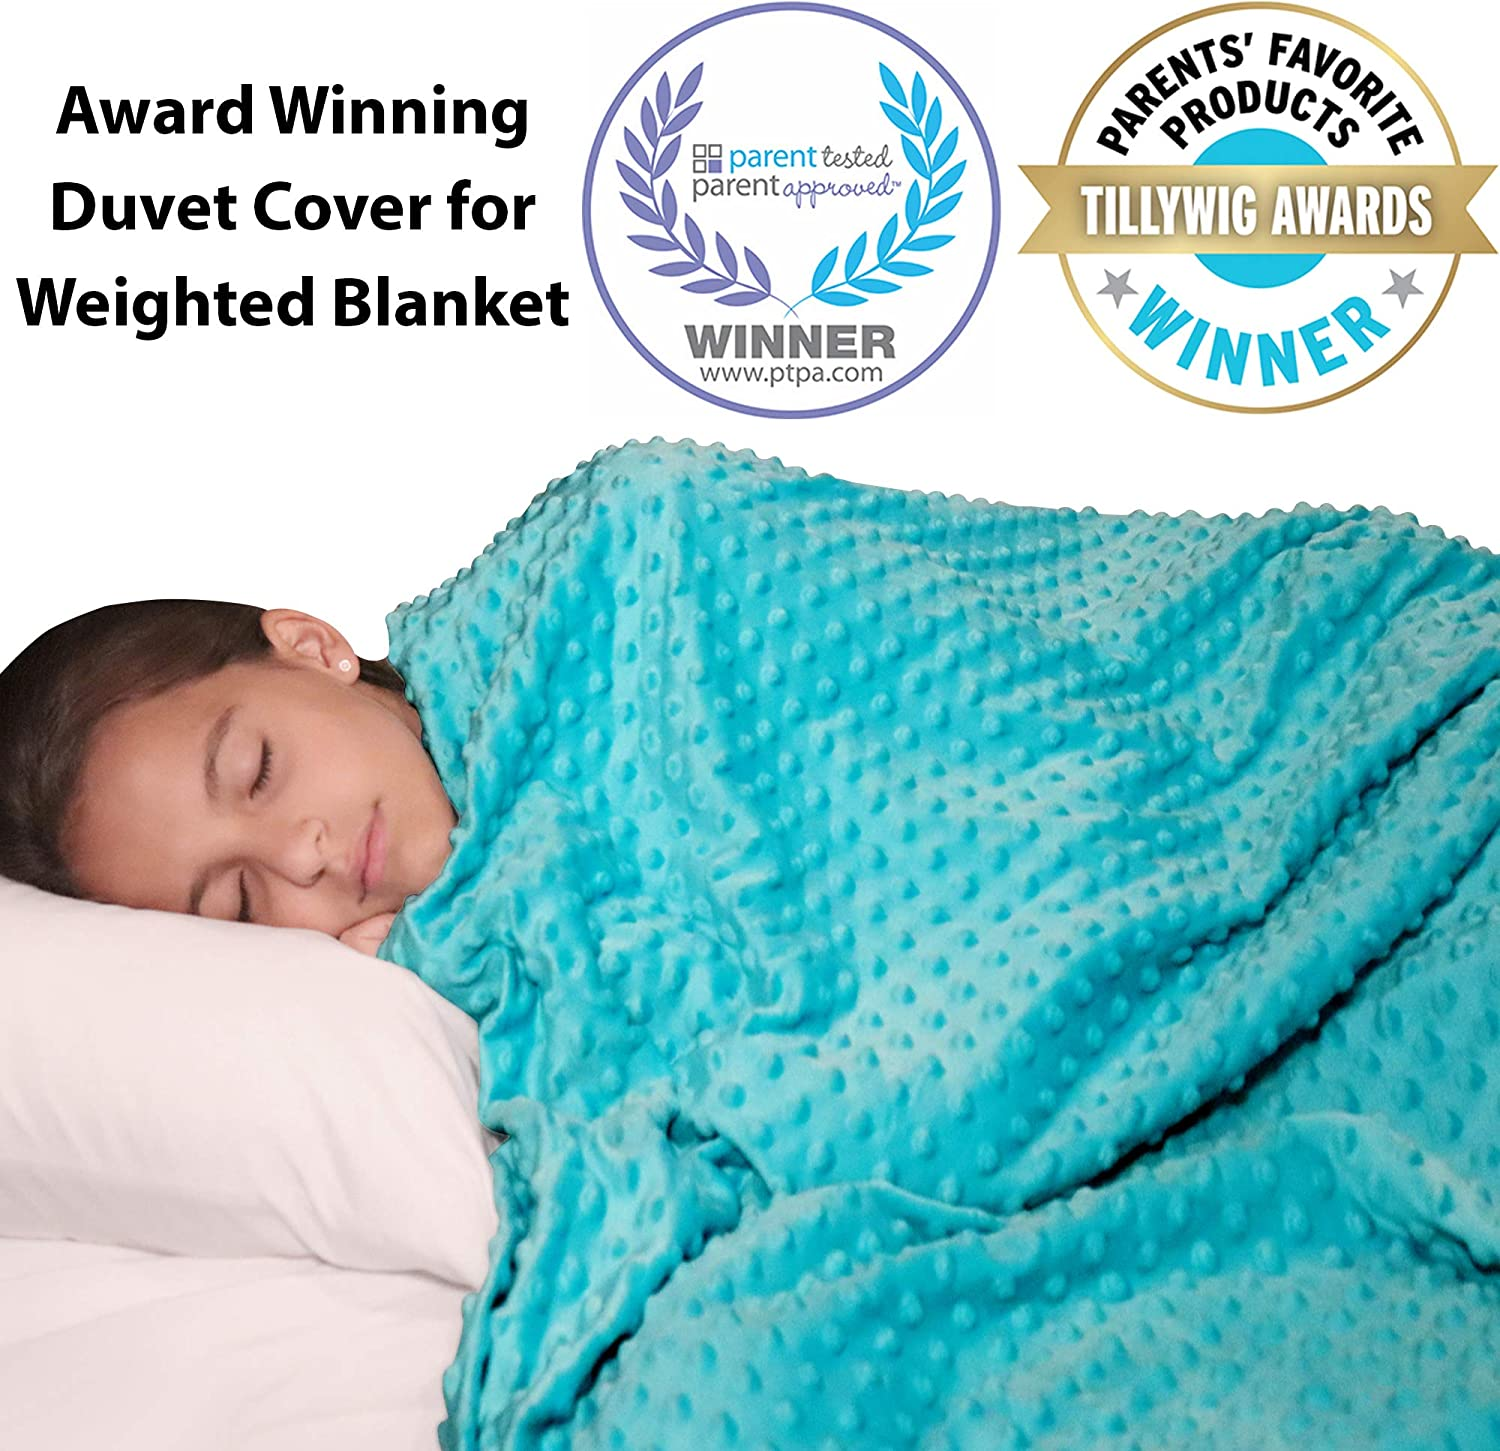 """Reversible Kids Duvet Cover for Weighted Blanket for Hot and Cold Sleepers - 48"""" x 72""""- Soft Minky Plush and Cooling Bamboo Weighted Blanket Cover - Removable and Washable Blanket Duvet Cover"""